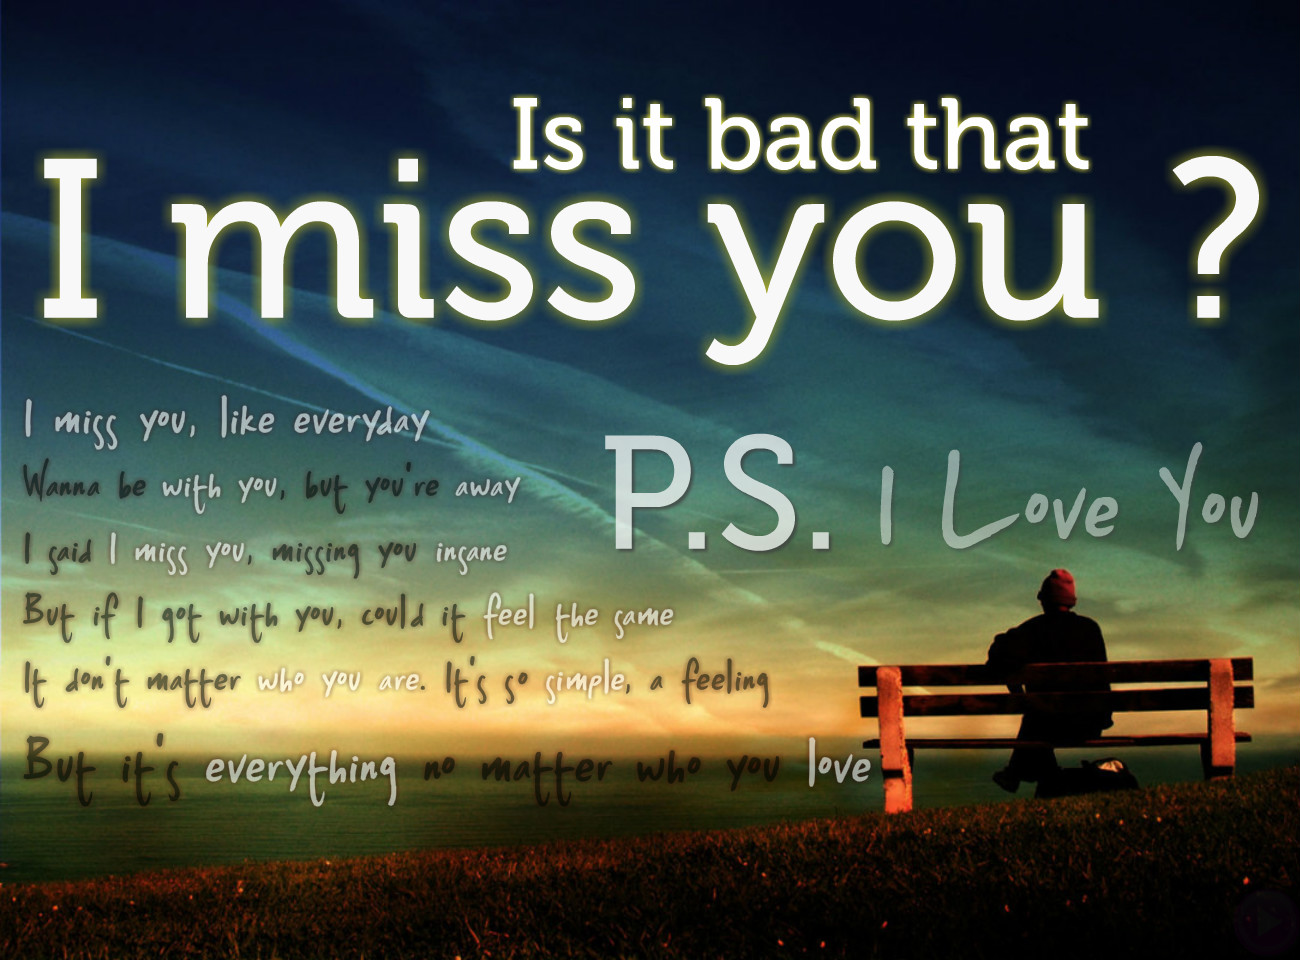 Miss You Love Quotes For Him I miss you text messages